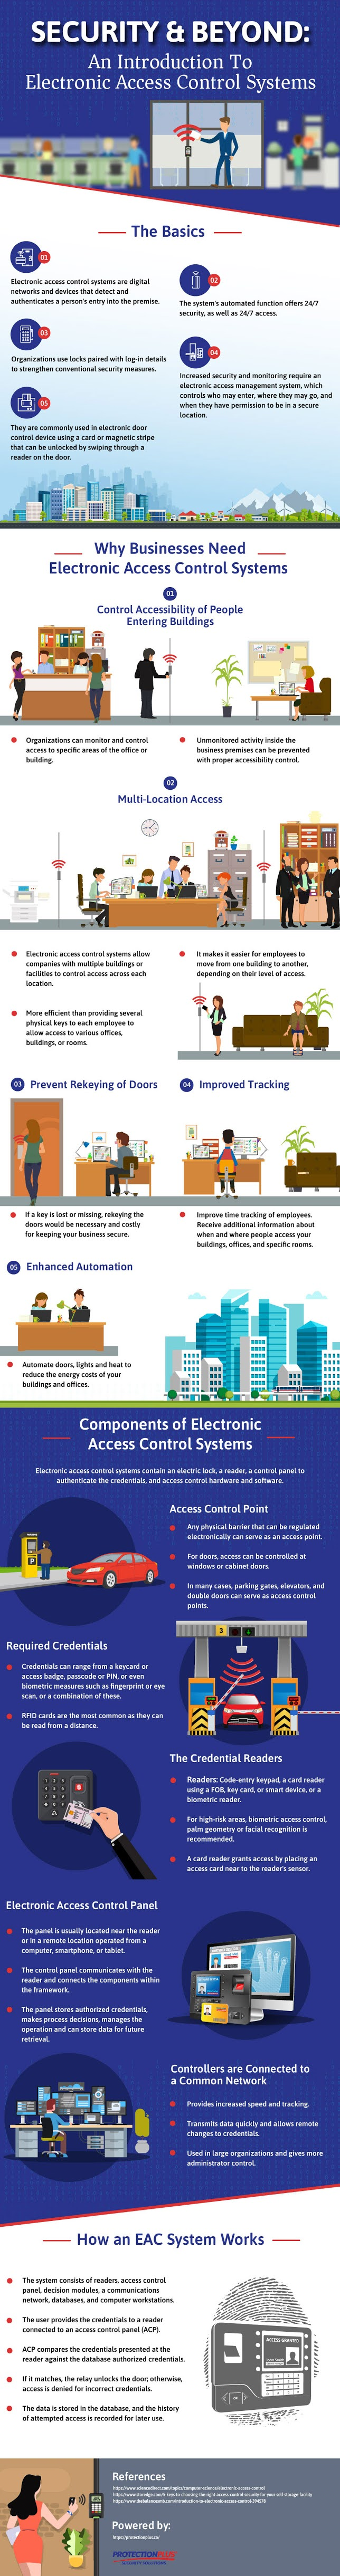 Security & Beyond: Introduction To Electronic Access Control Systems #infographic #Business #Security